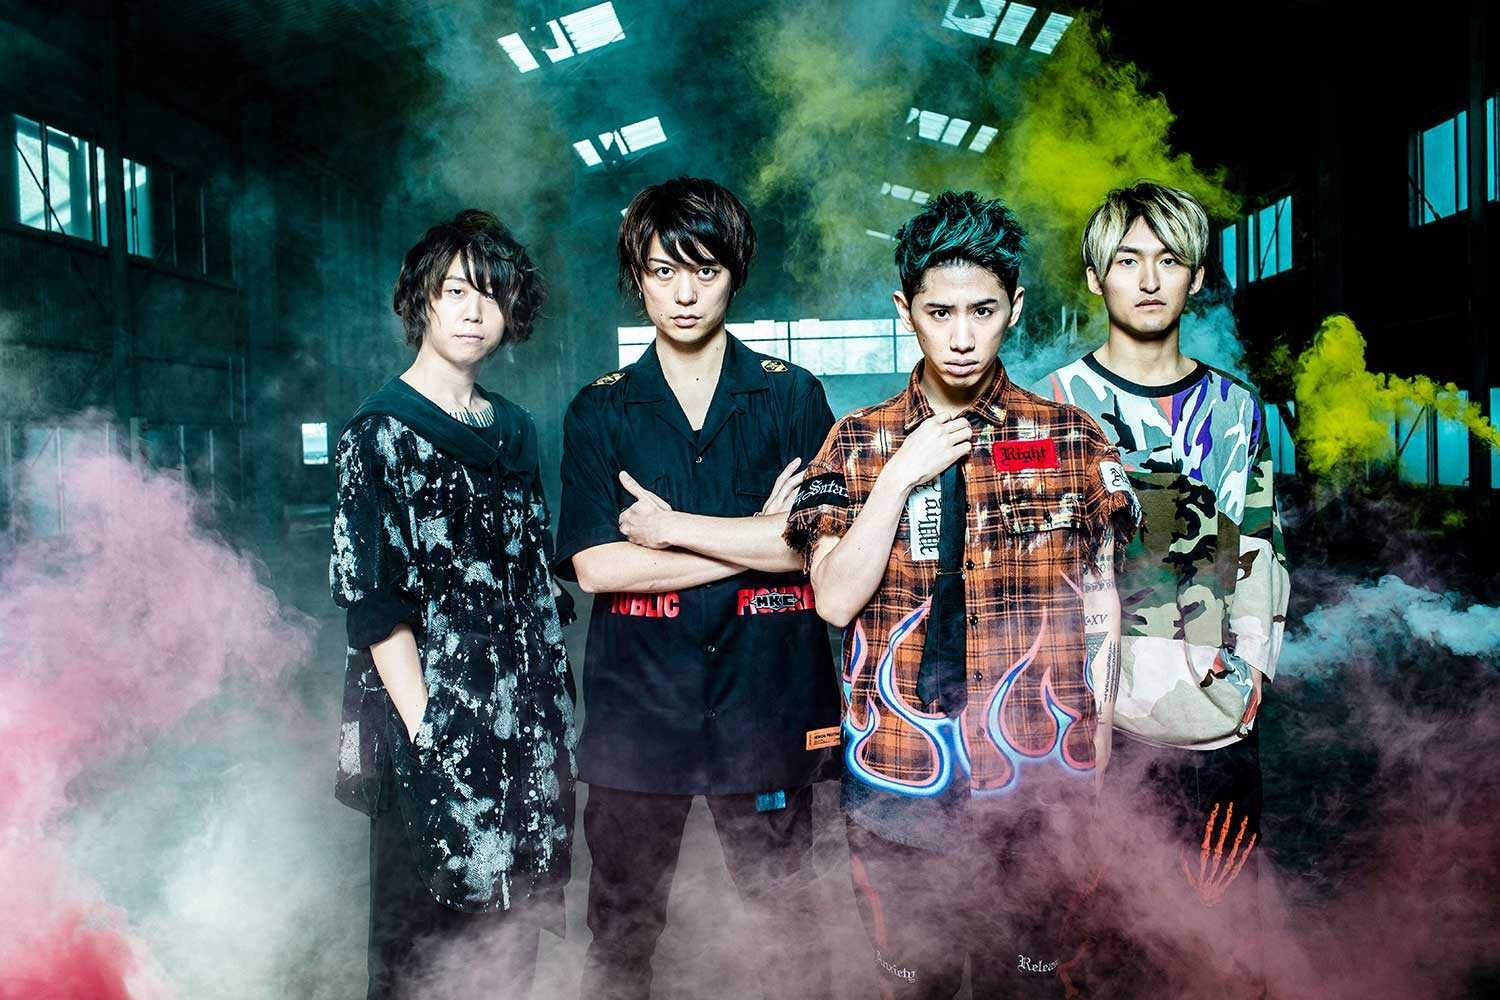 'ONE OK ROCK' Announces Field of Wonder Livestream Stadium Concert on October 11